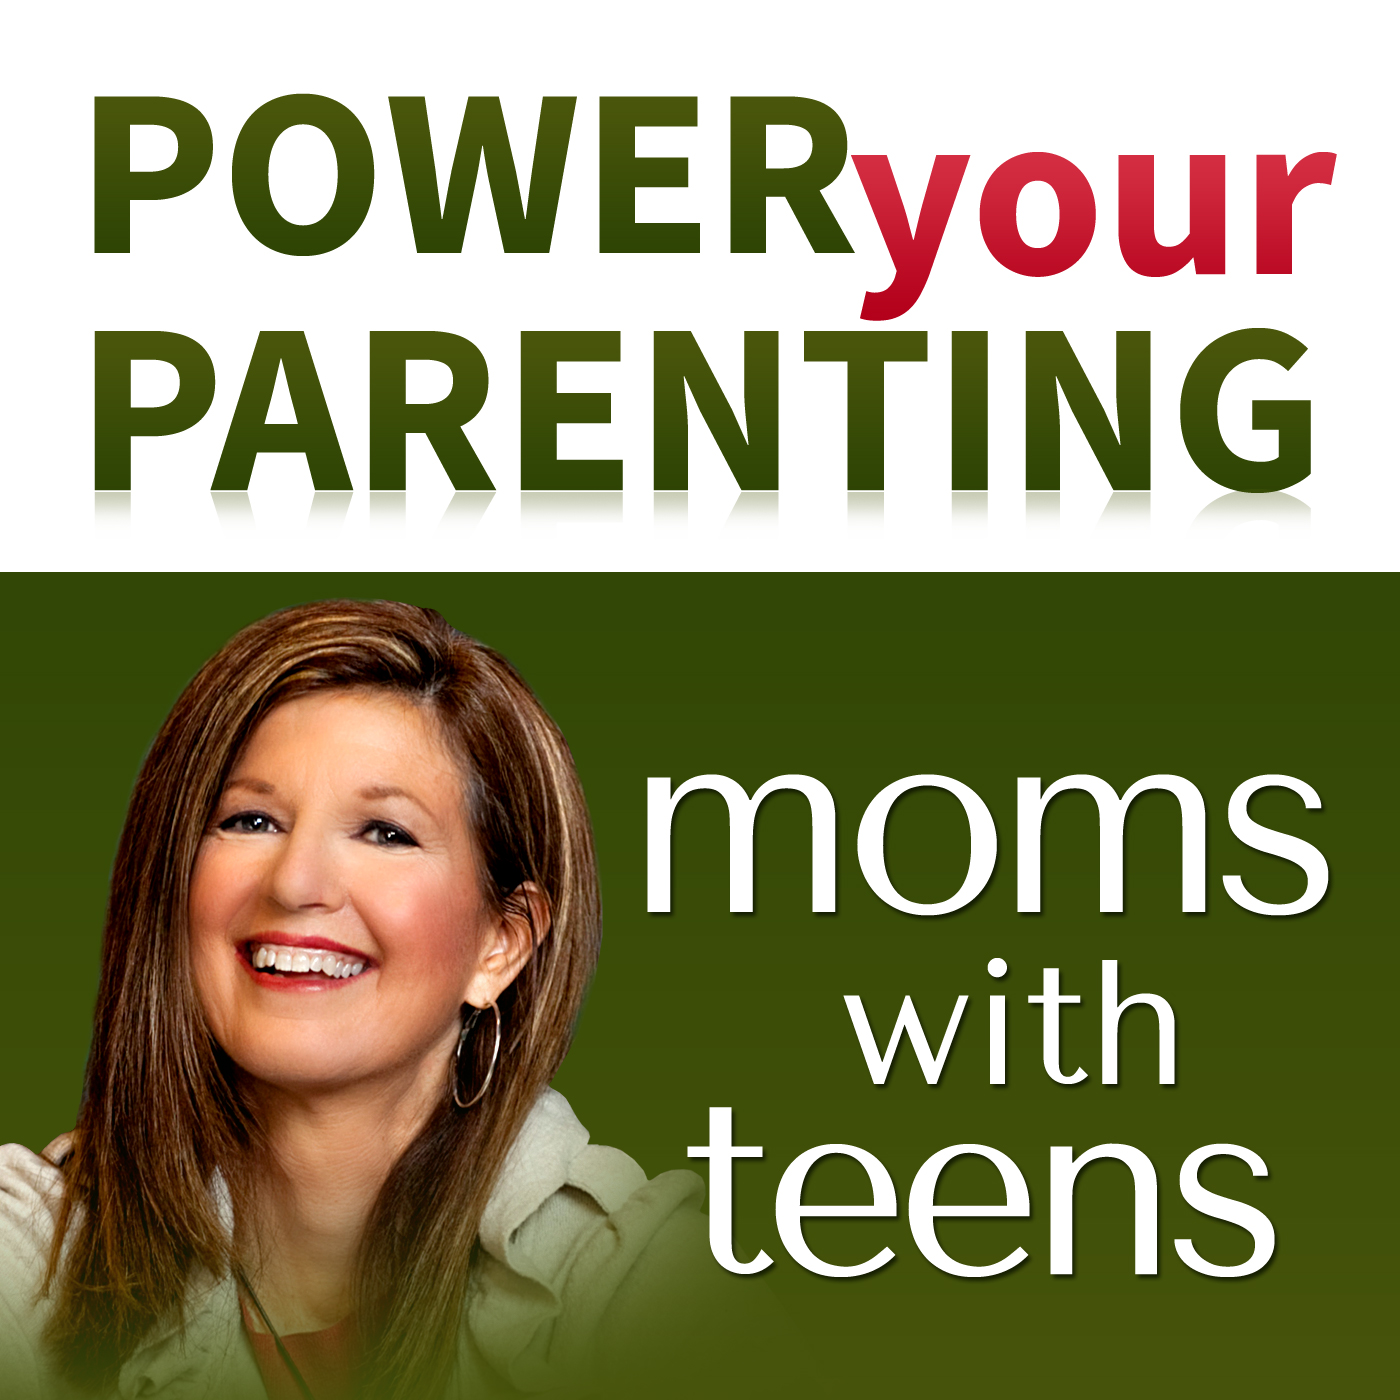 Power Your Parenting: Moms with Teens